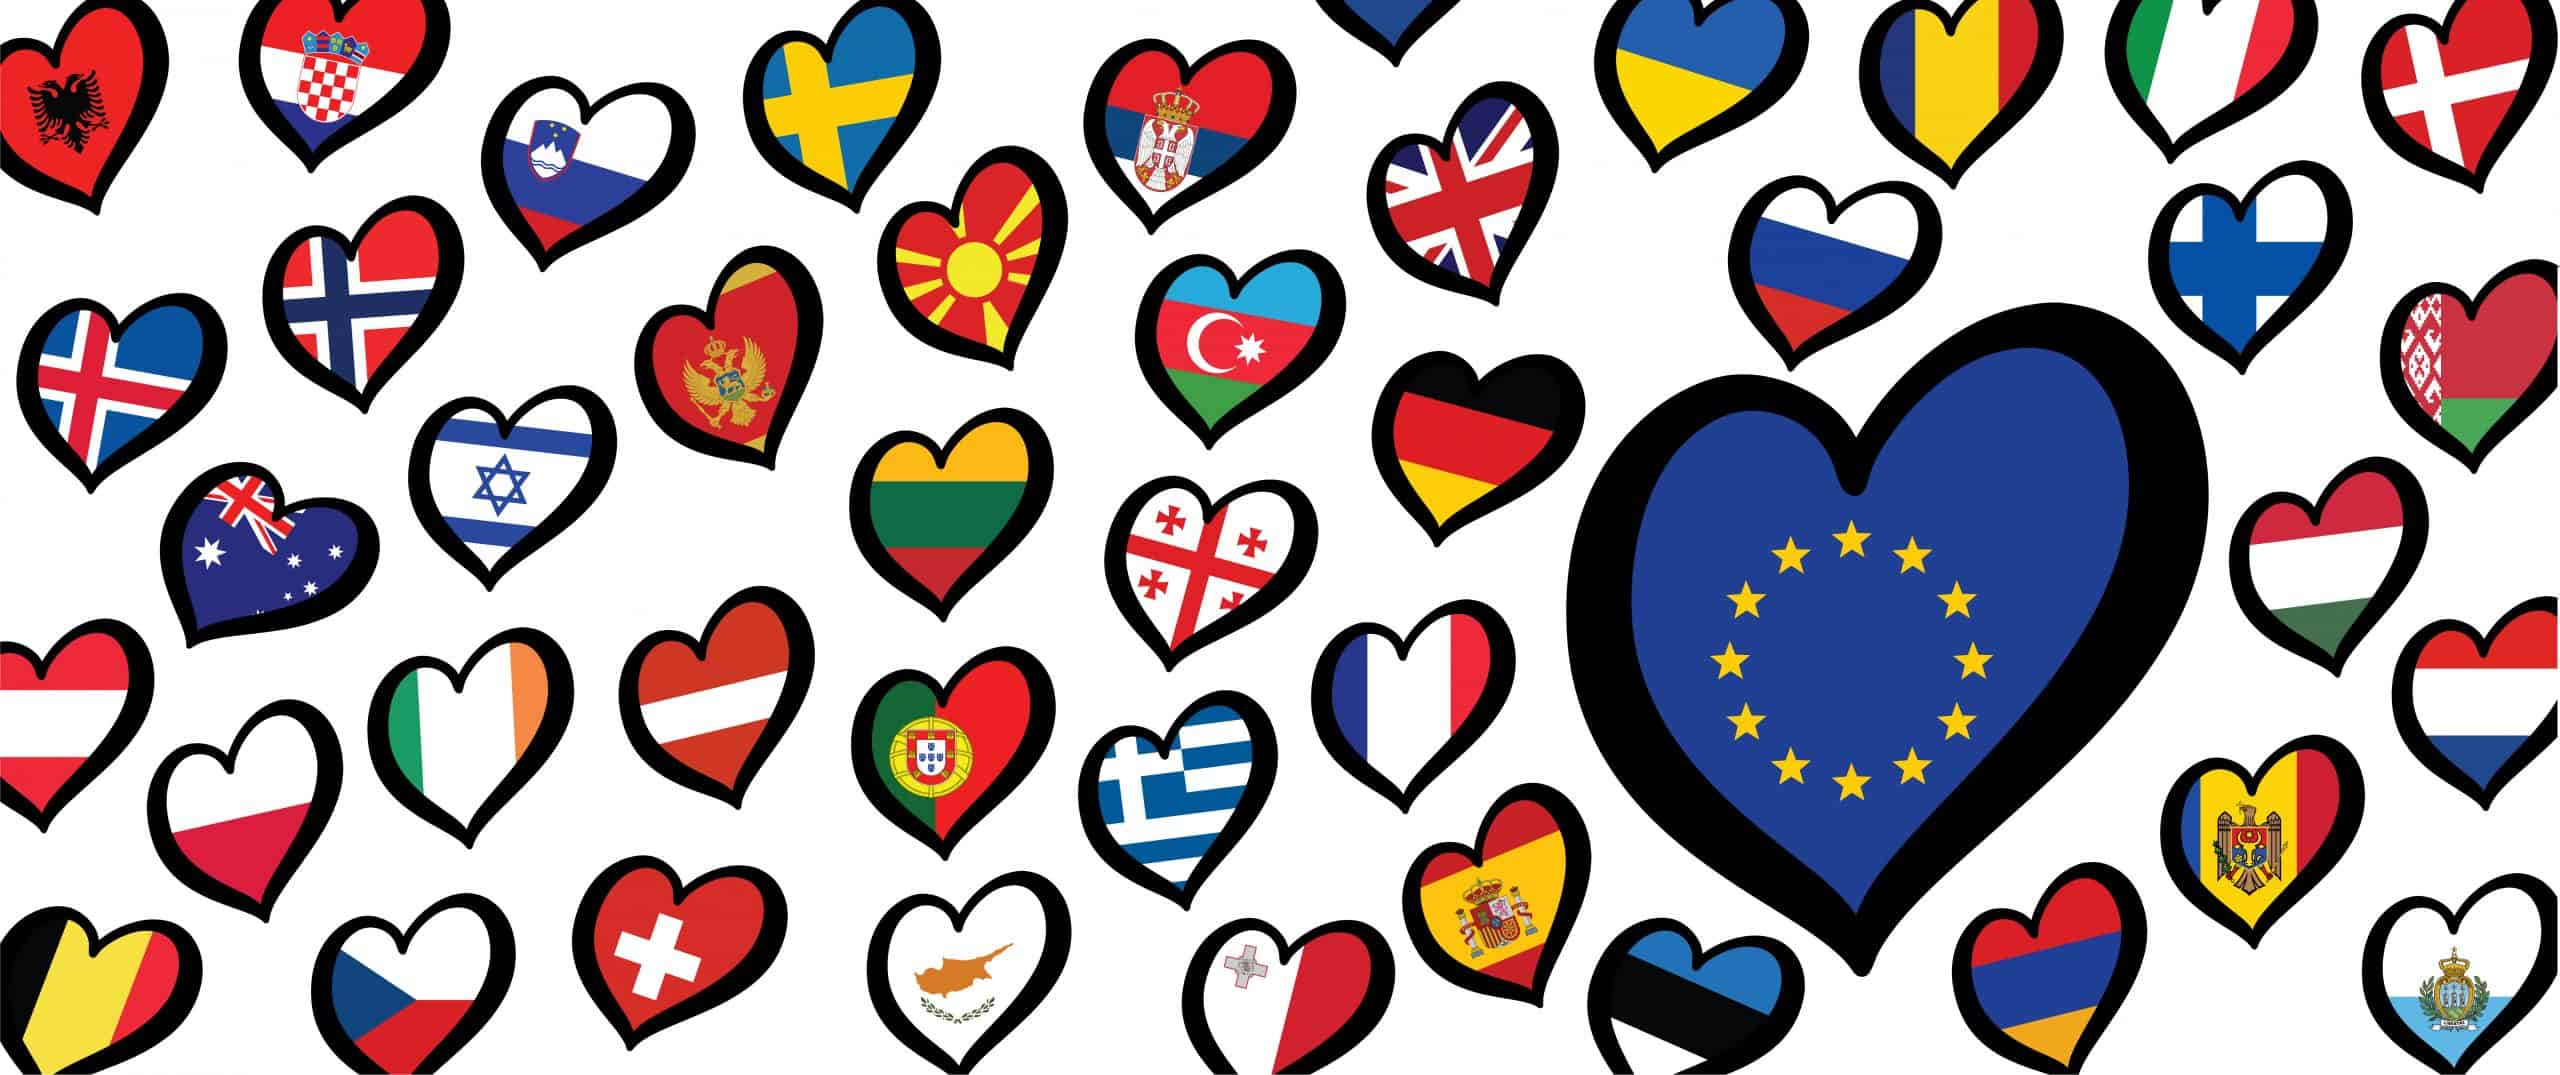 hearts with european flags on it representing eurovision